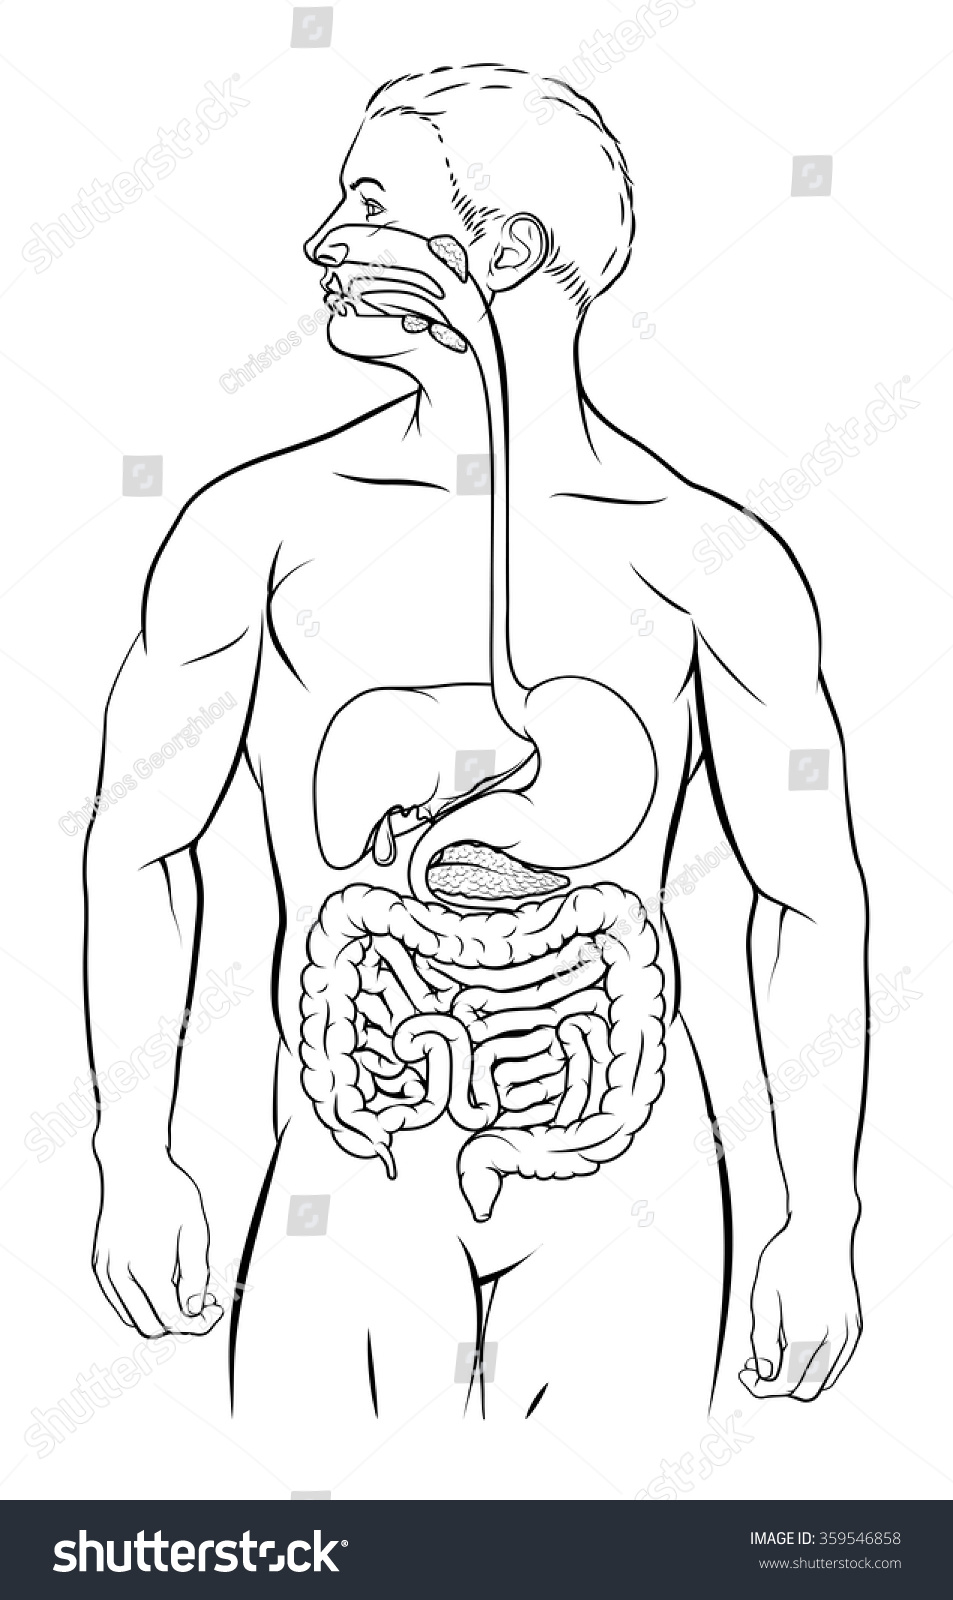 Human Digestive System Digestive Tract Alimentary Stock Vector